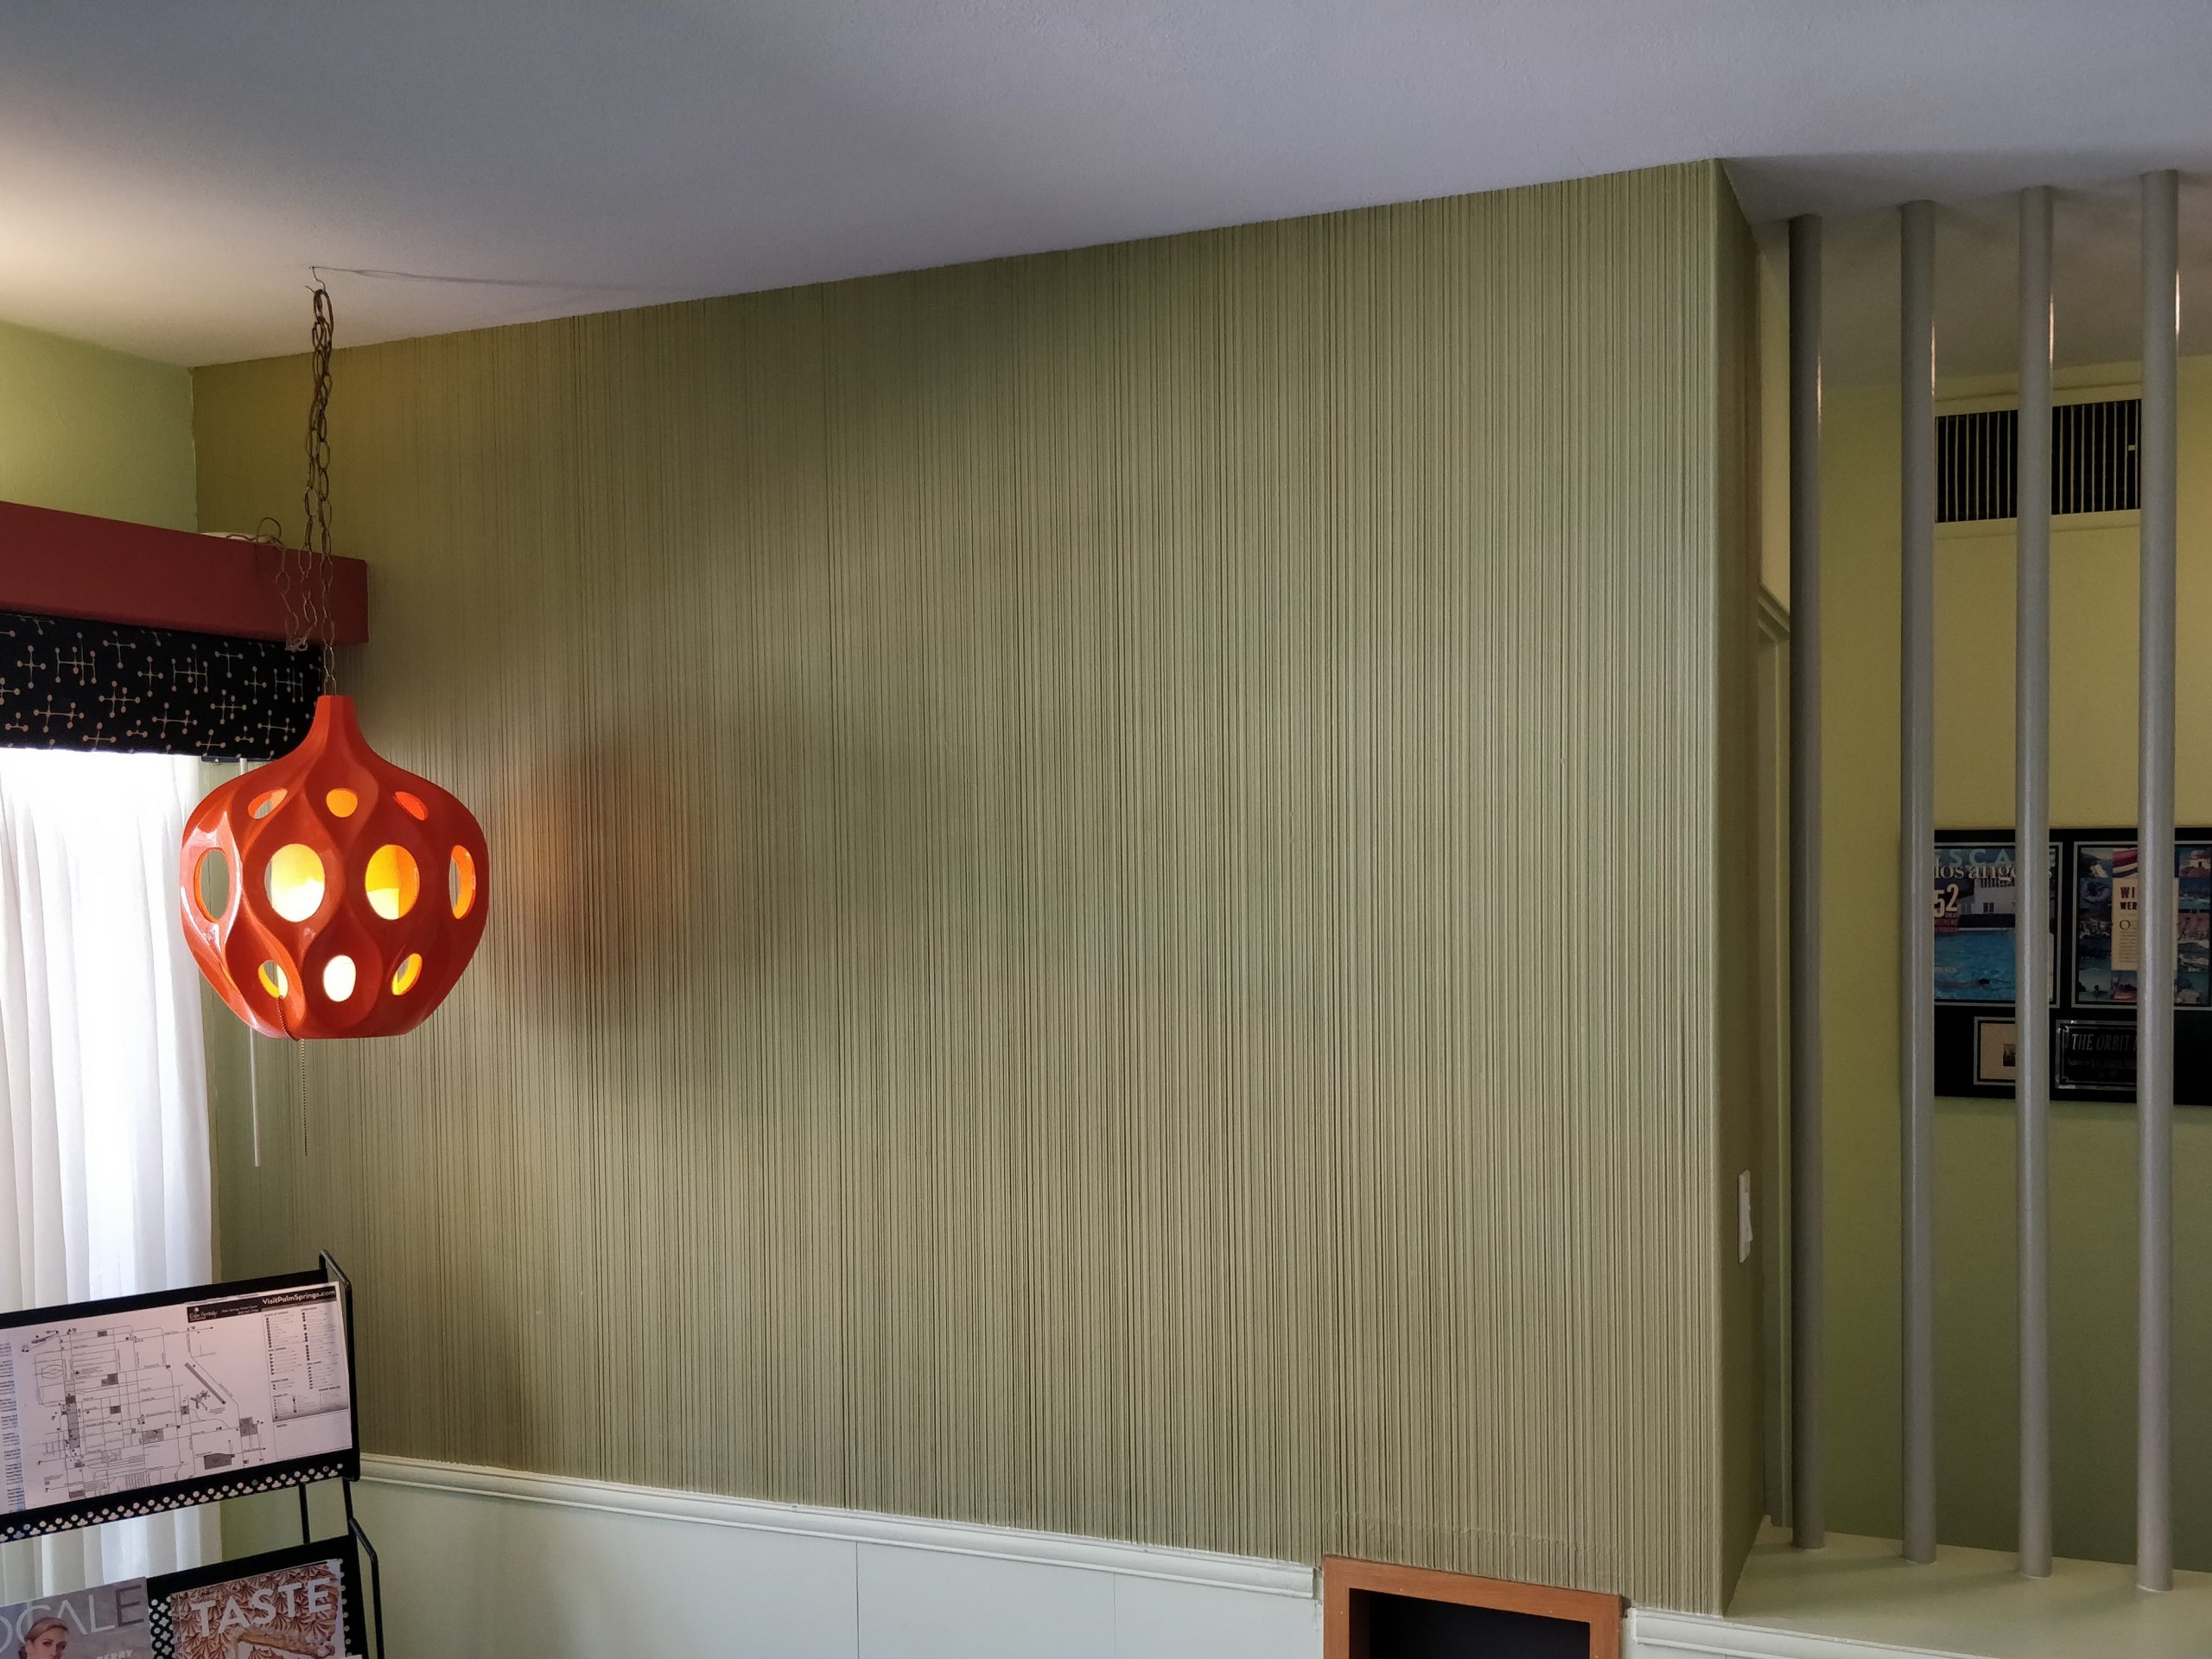 Weldtex wall Orbit In - Mid-century modern accent walls